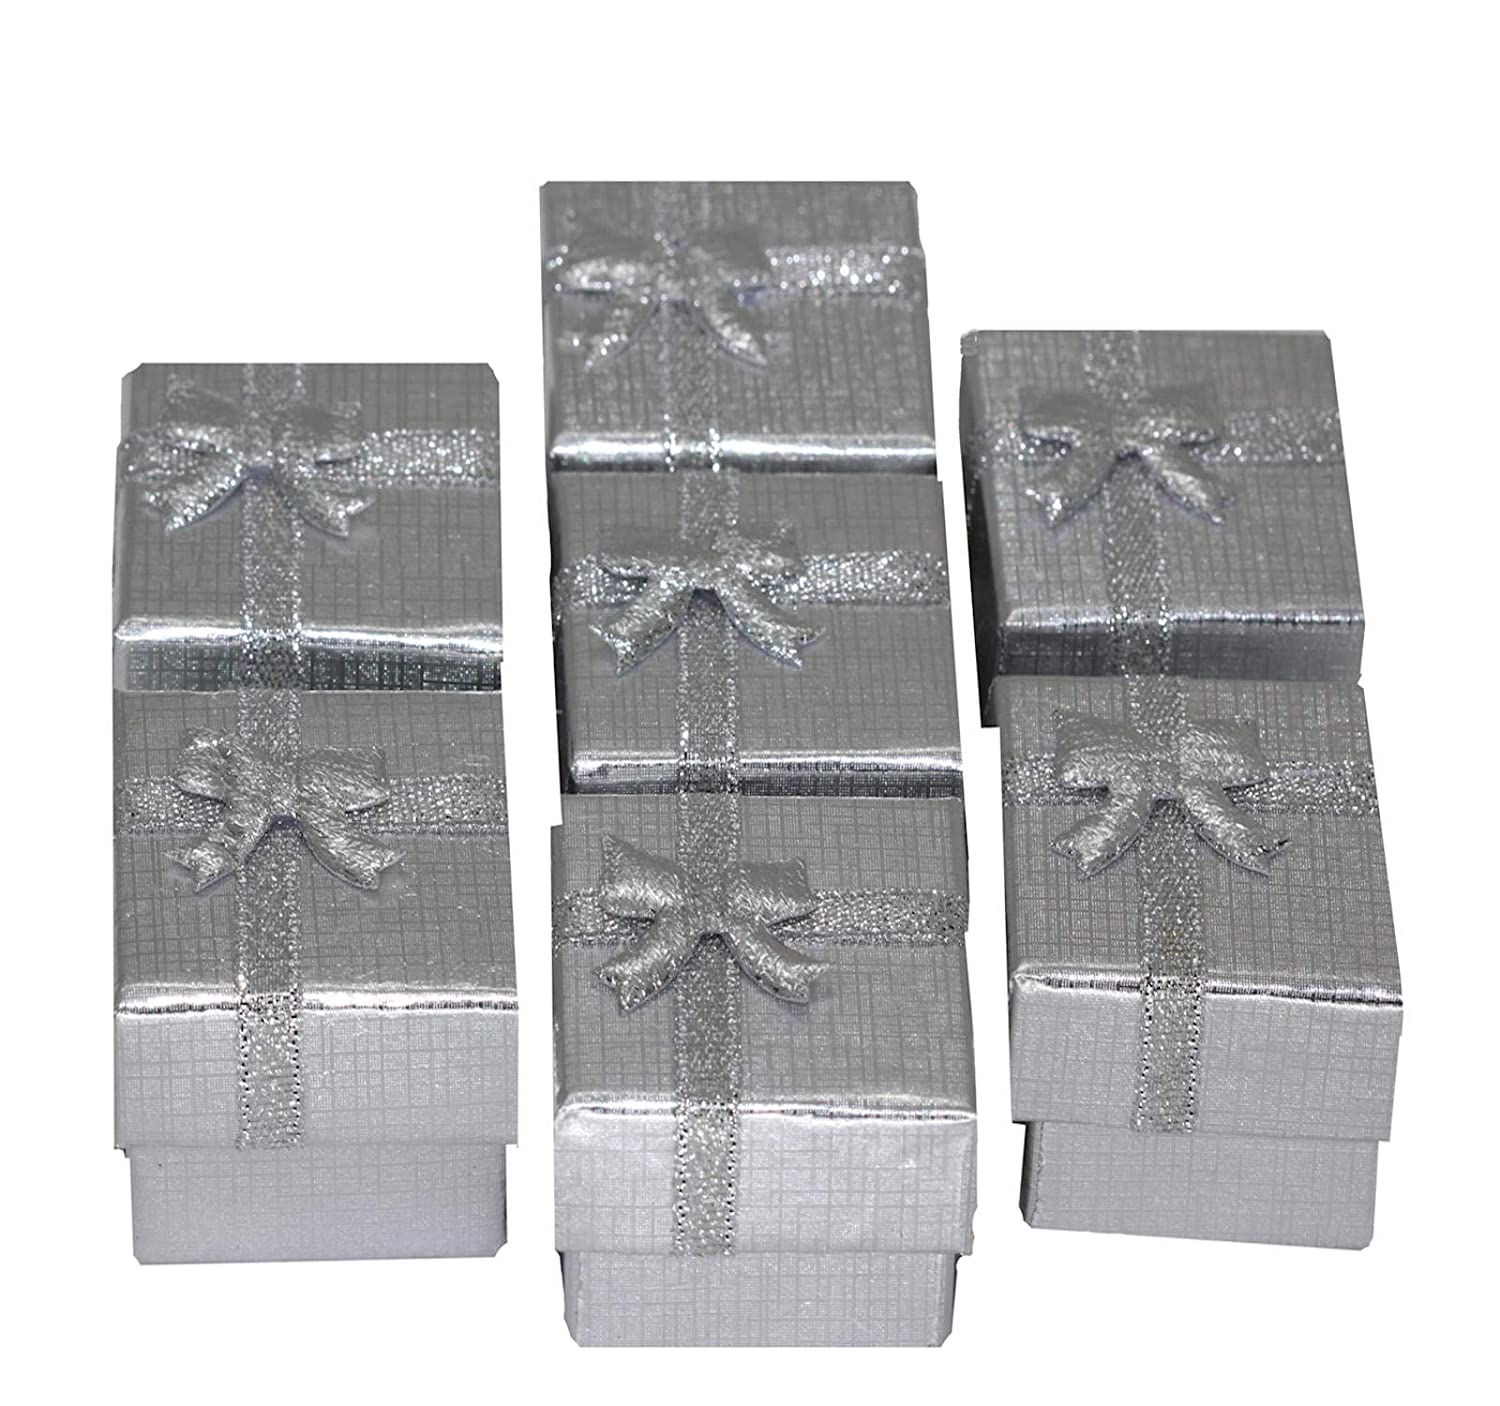 Bulk Lot 20 Pcs Silver Square Jewelry Ring Gift Cardboard Boxes | Earring Box with Bowknot ReFaXi